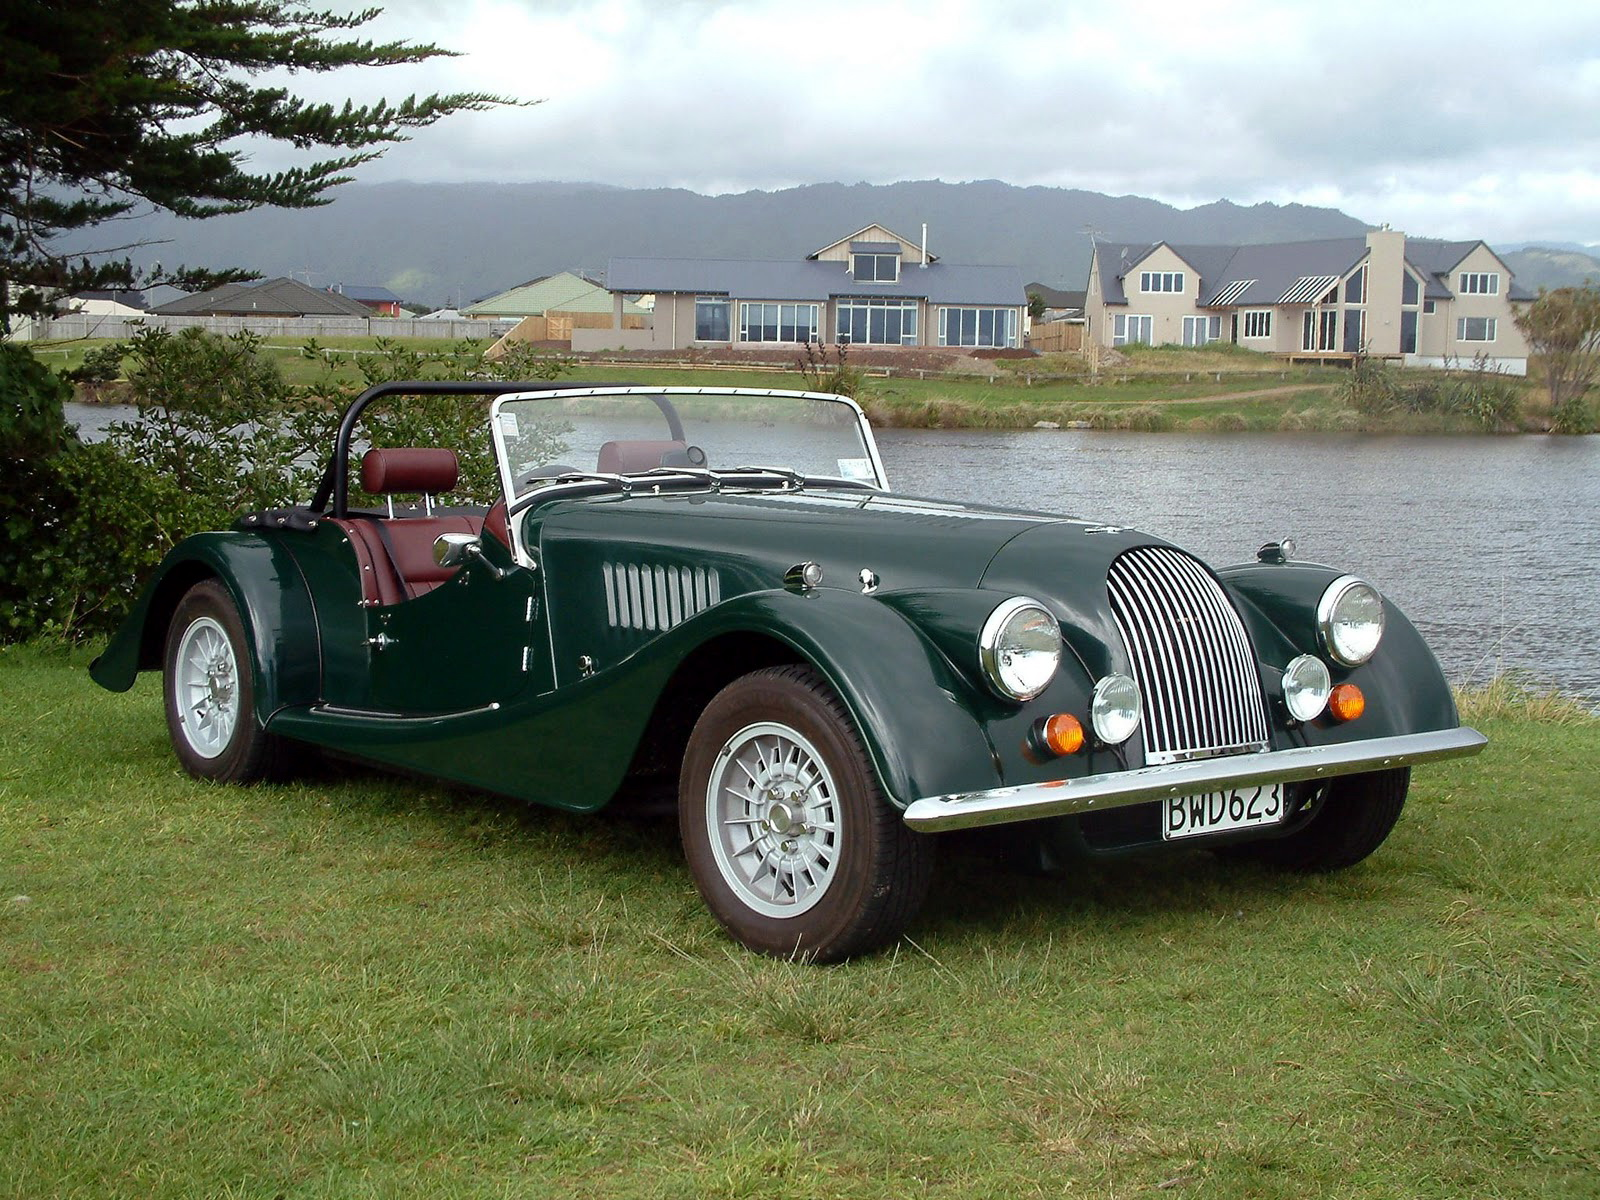 morgan motor company The morgan motor company tour malvern, known for its truly magnificent countryside has another treasure to offer tourists and enthusiasts alike, the morgan motor company.